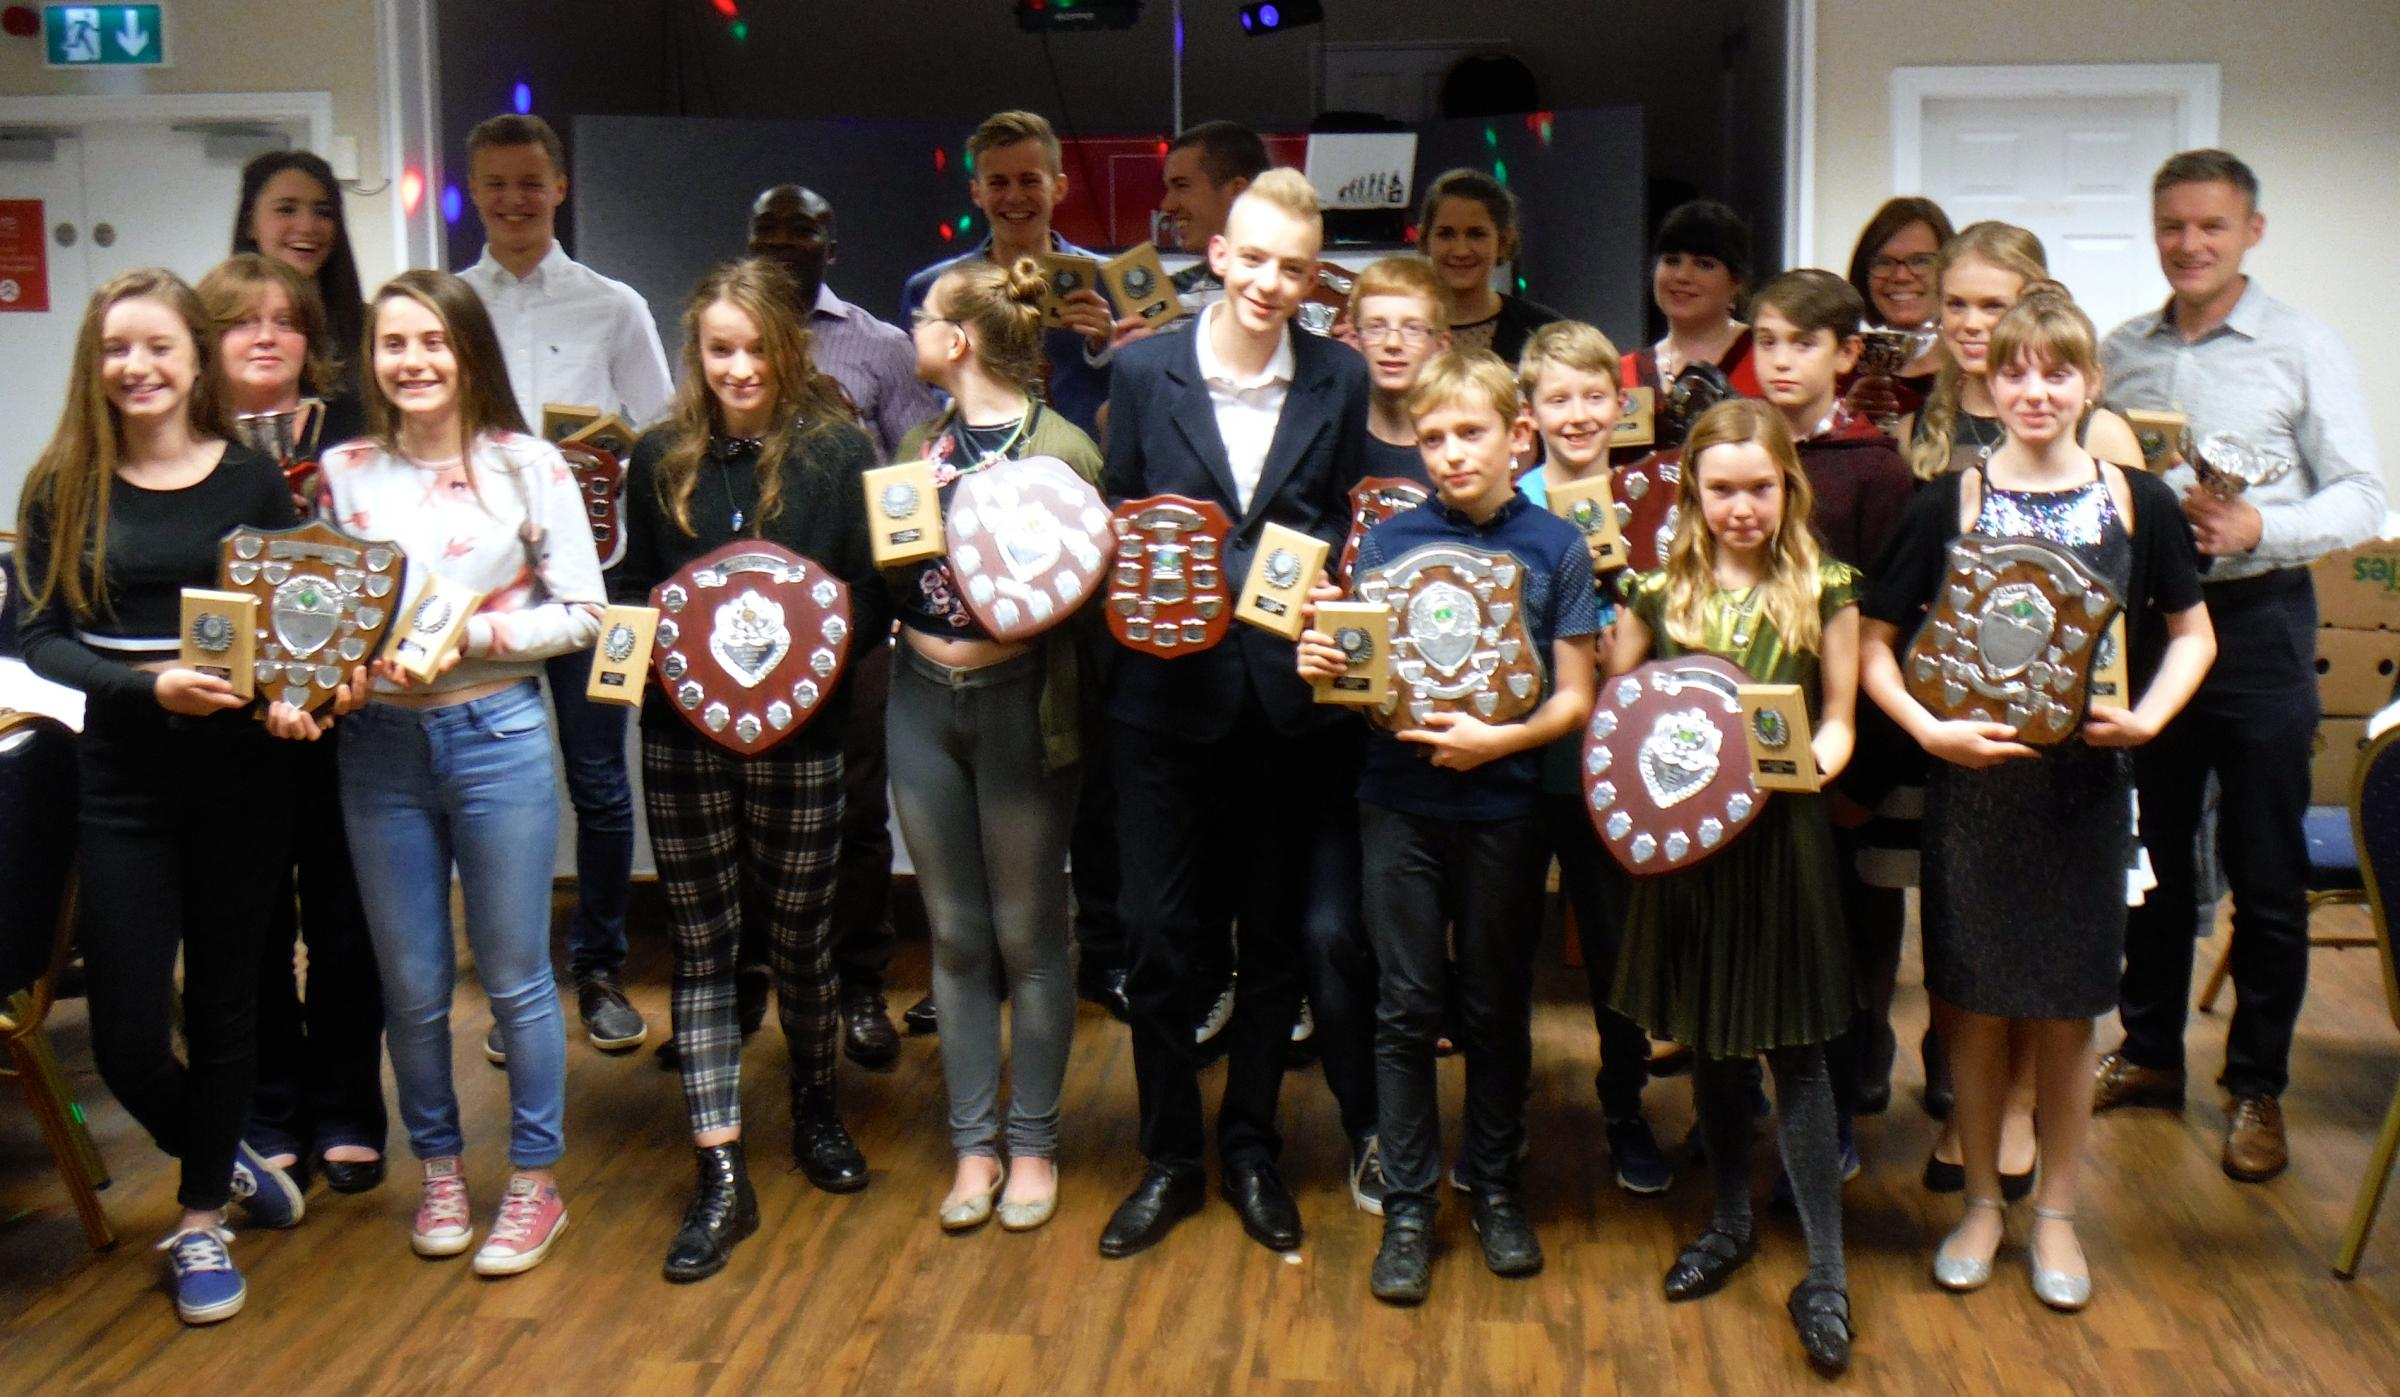 The Hereford and County Athletics Club winners